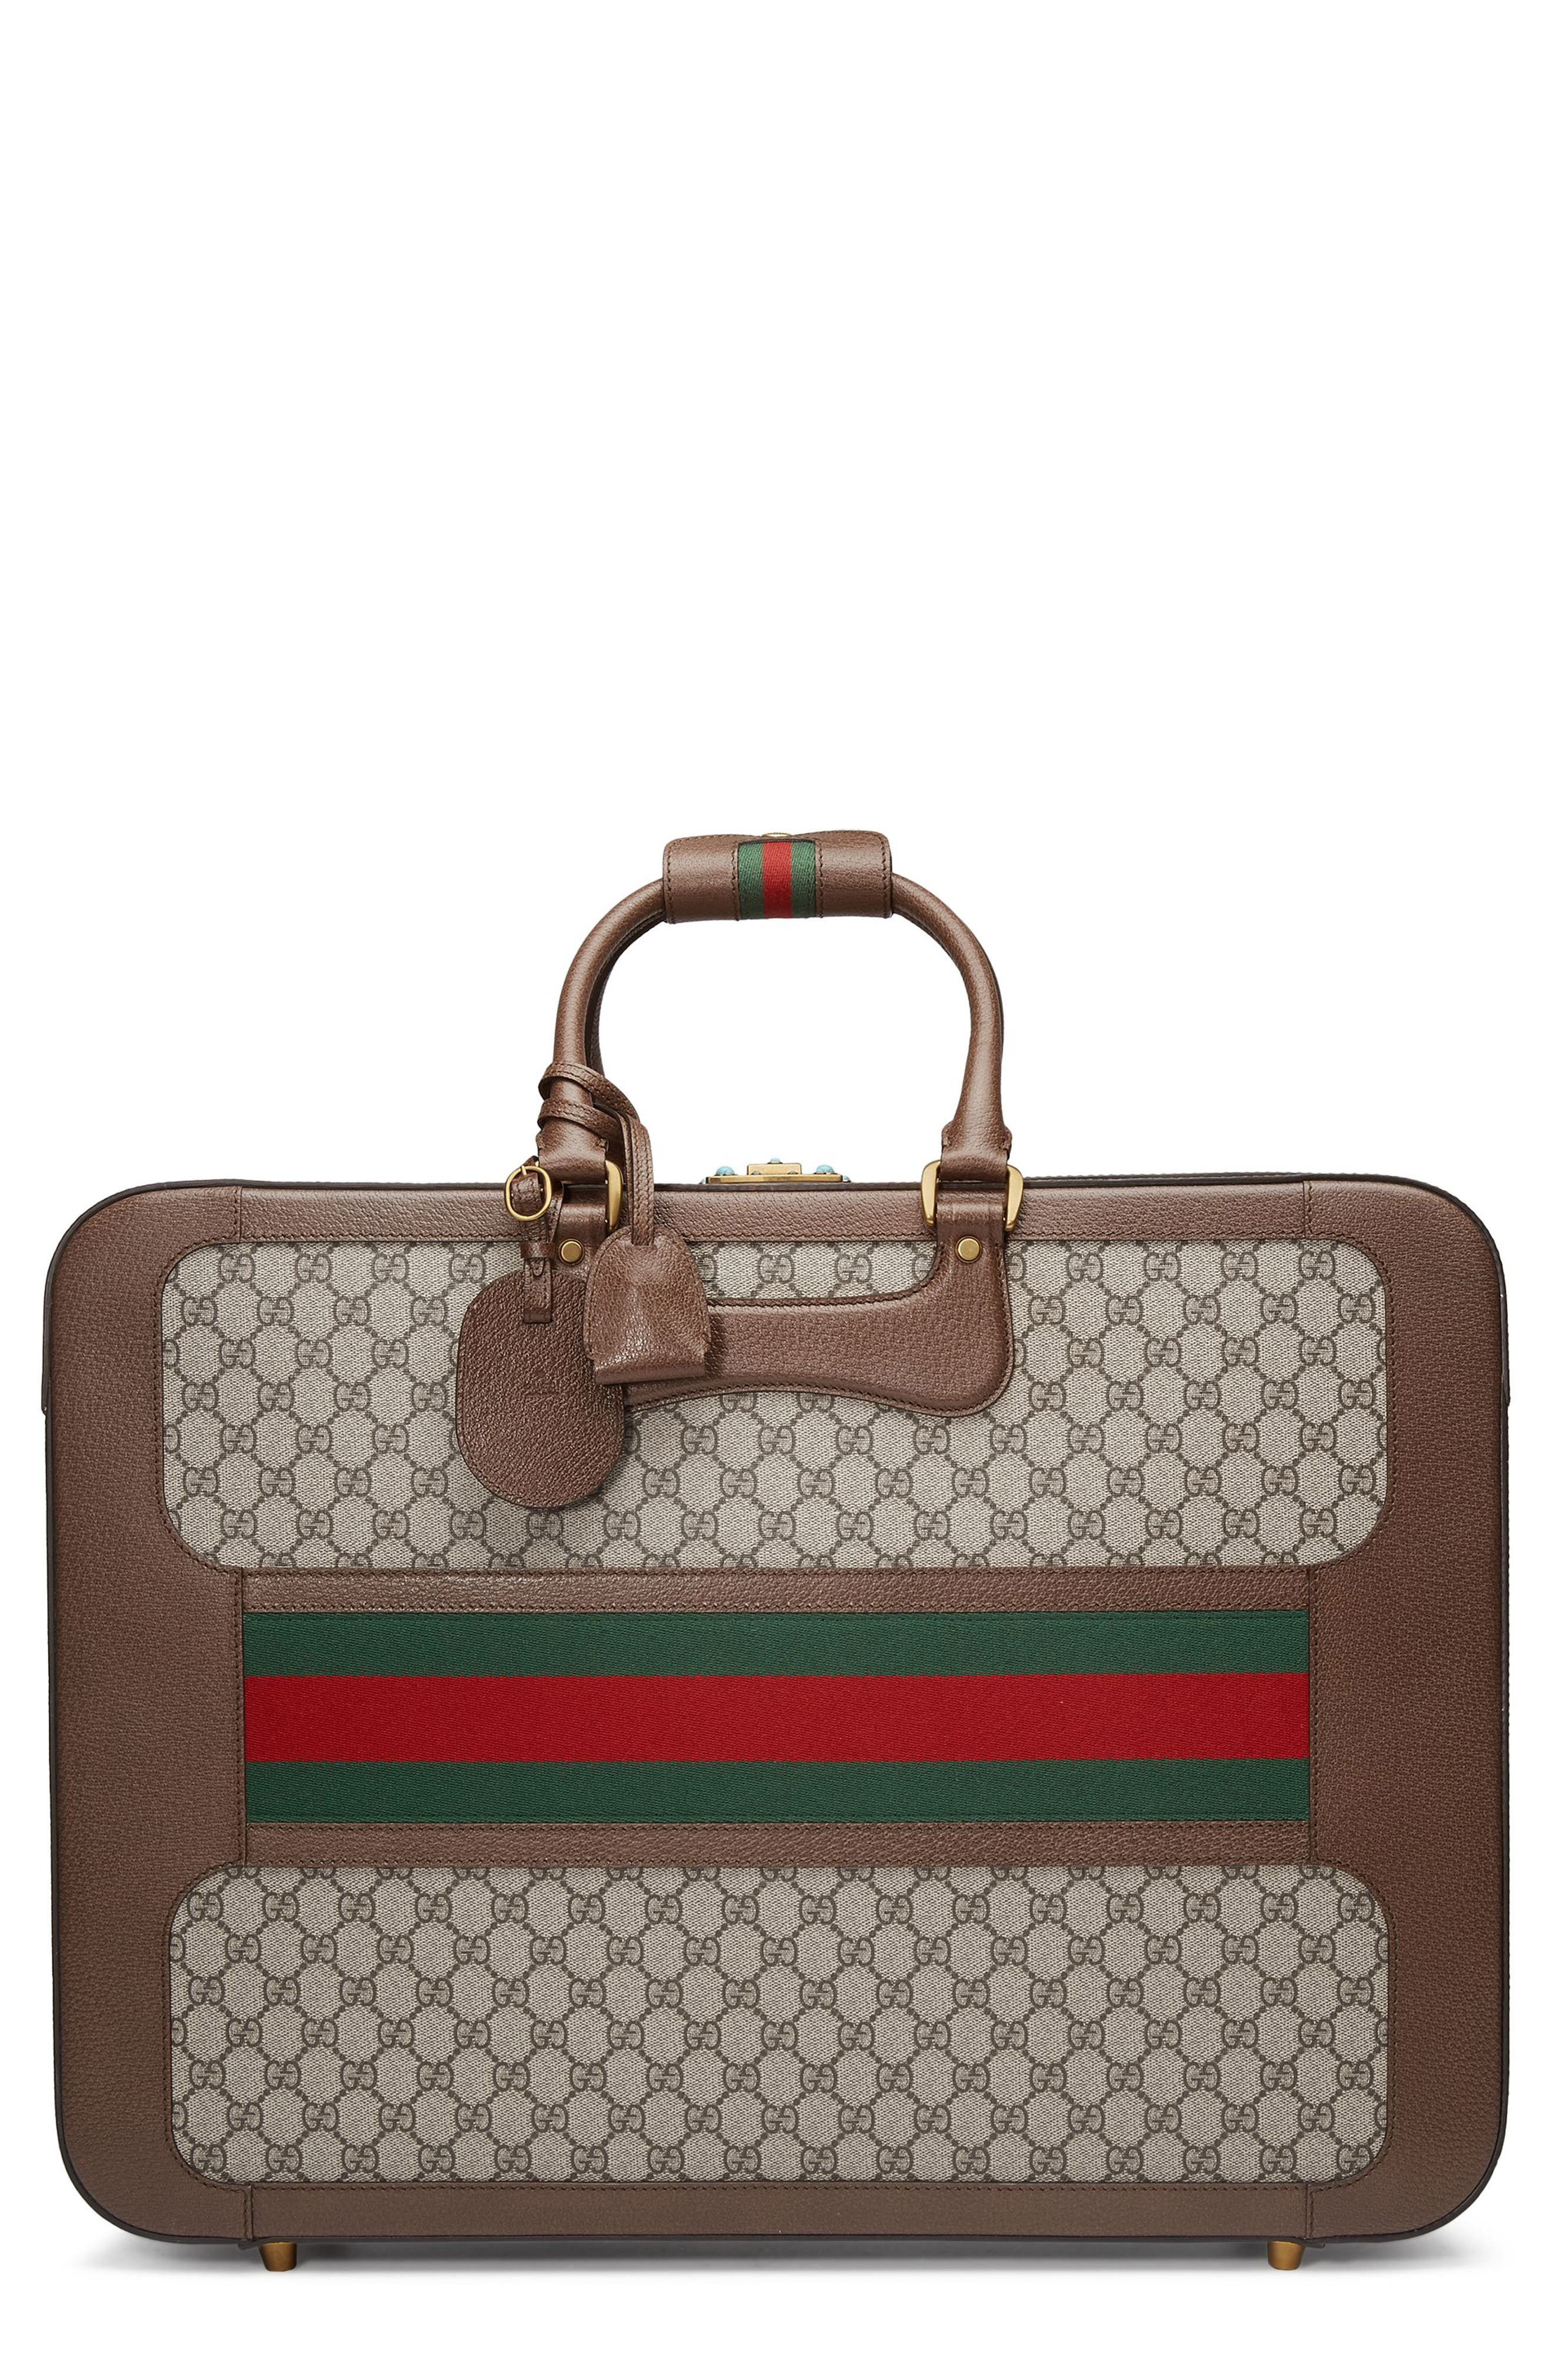 Gucci Large Echo GG Supreme Canvas & Leather Suitcase